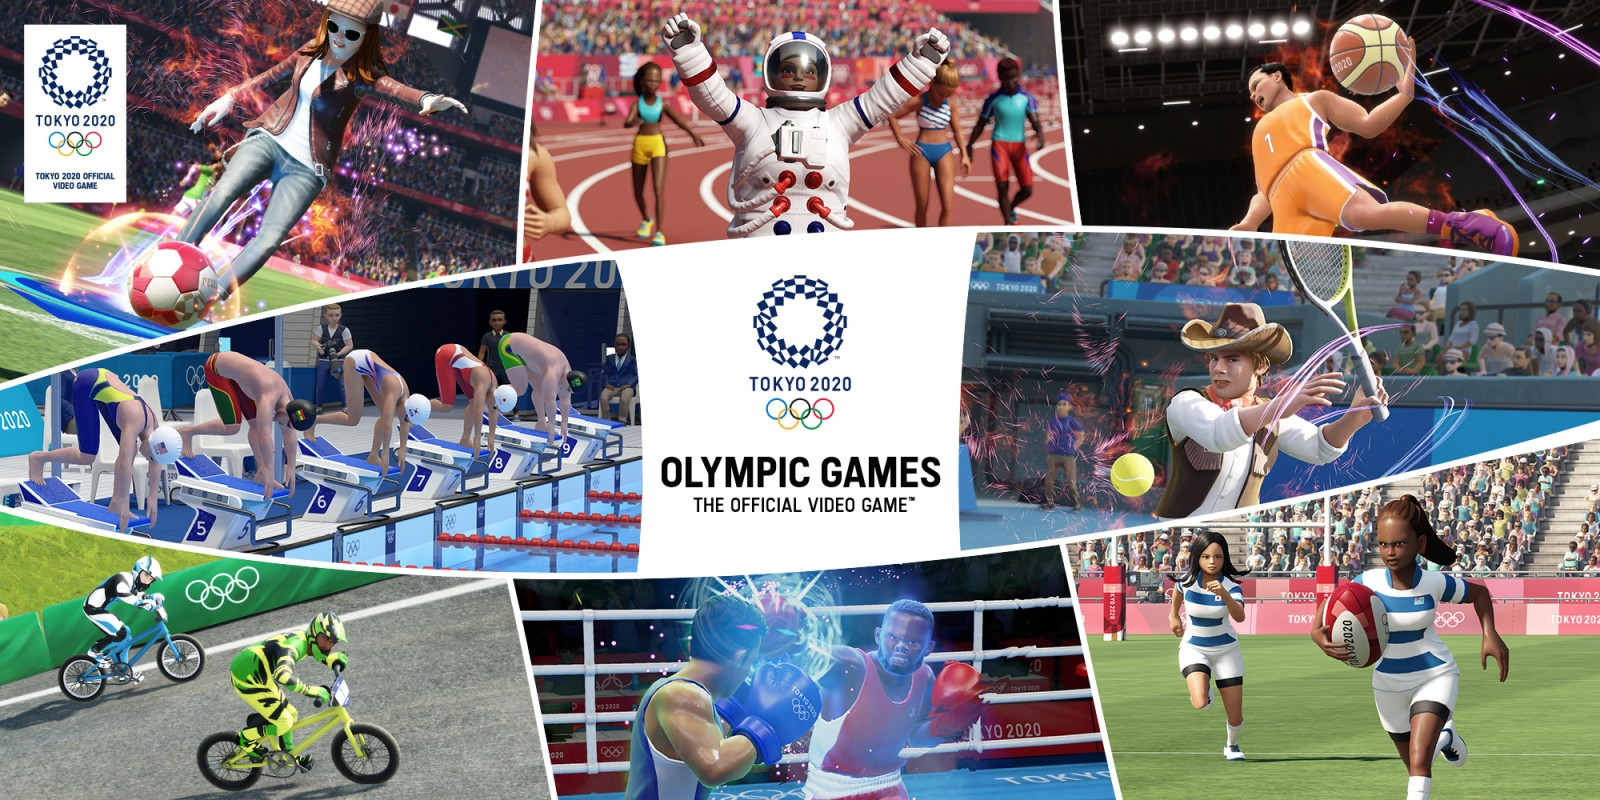 Last Game You Finished And Your Four-ghts - Page 37 H2x1_NSwitch_OlympicGamesTokyo2020TheOfficialVideoGame_enGB_image1600w